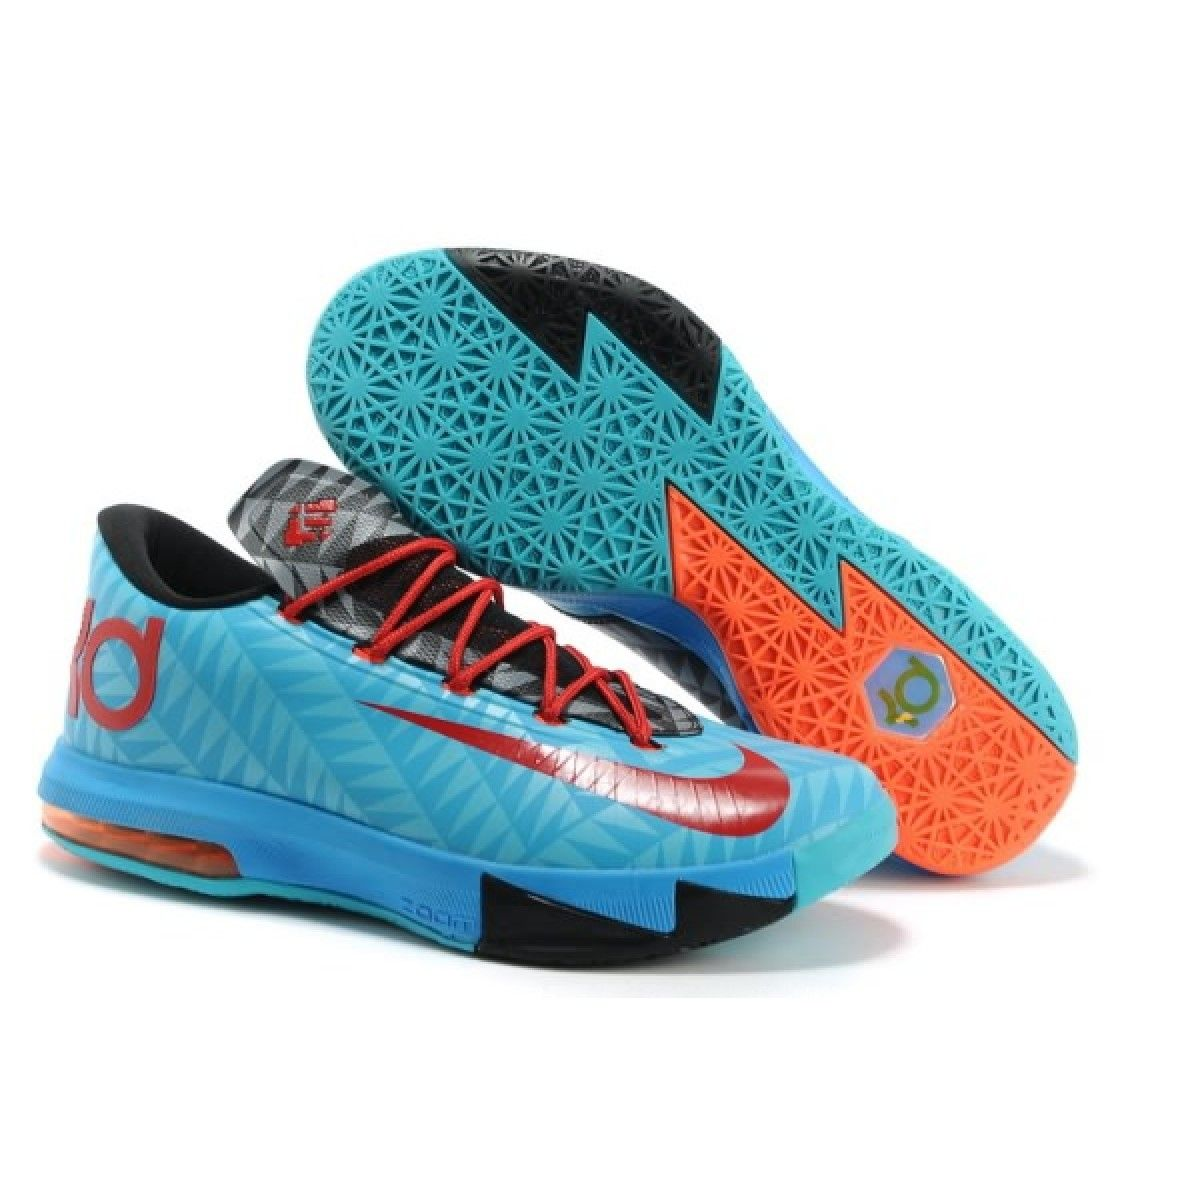 new style 65ca6 925a1 kevin durant shoes   Home 2014 All Star Kevin Durant s shoes Nike Zoom  Kevin Durant s KD VI ...   anthonys stuff   Pinterest   Kevin durant shoes,  ...